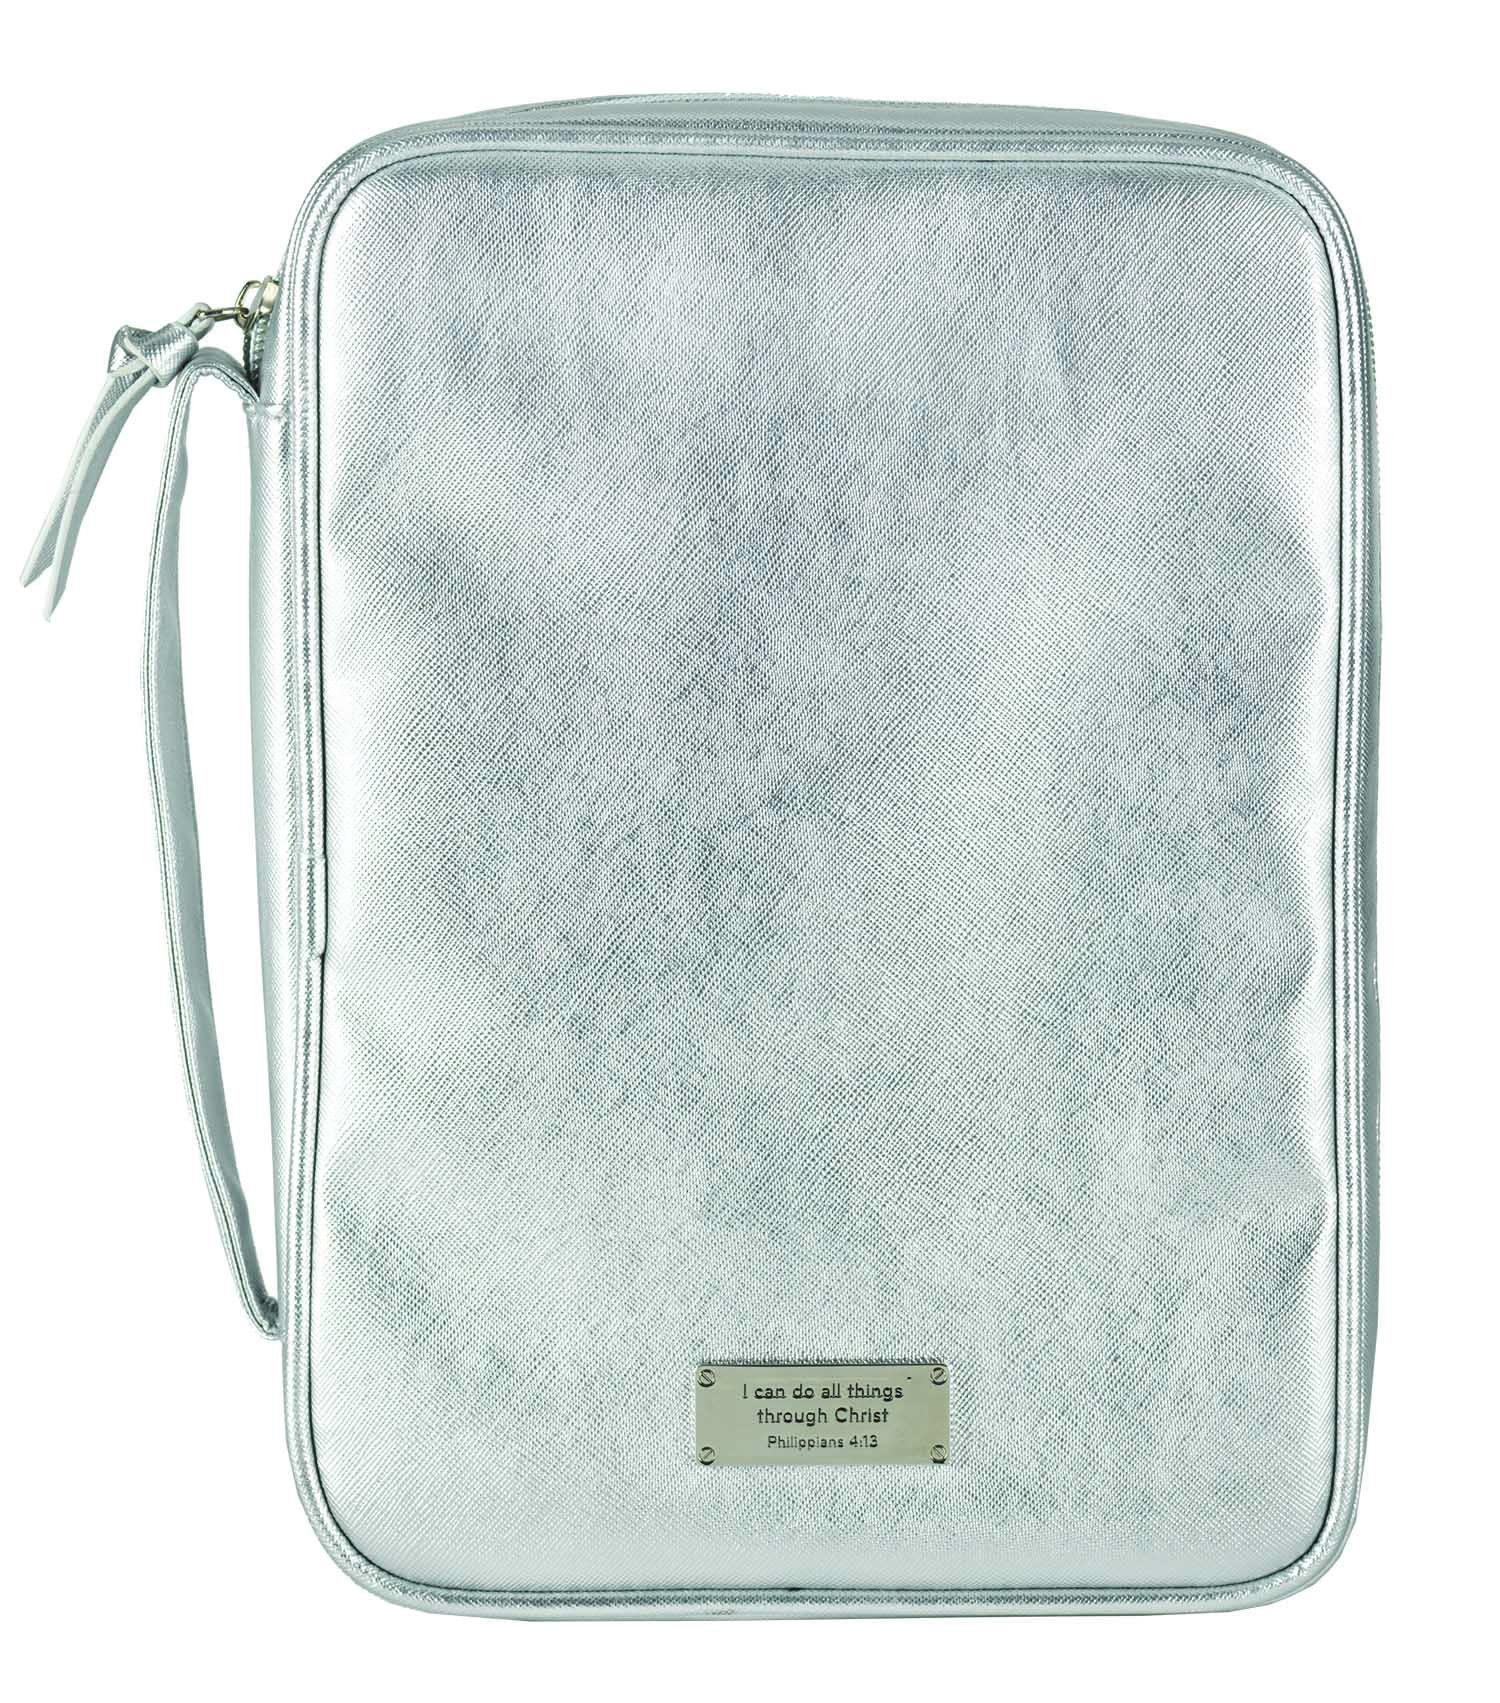 I Can Do All Things Silver Tone Metallic Extra Large Bible Cover Case with Handle